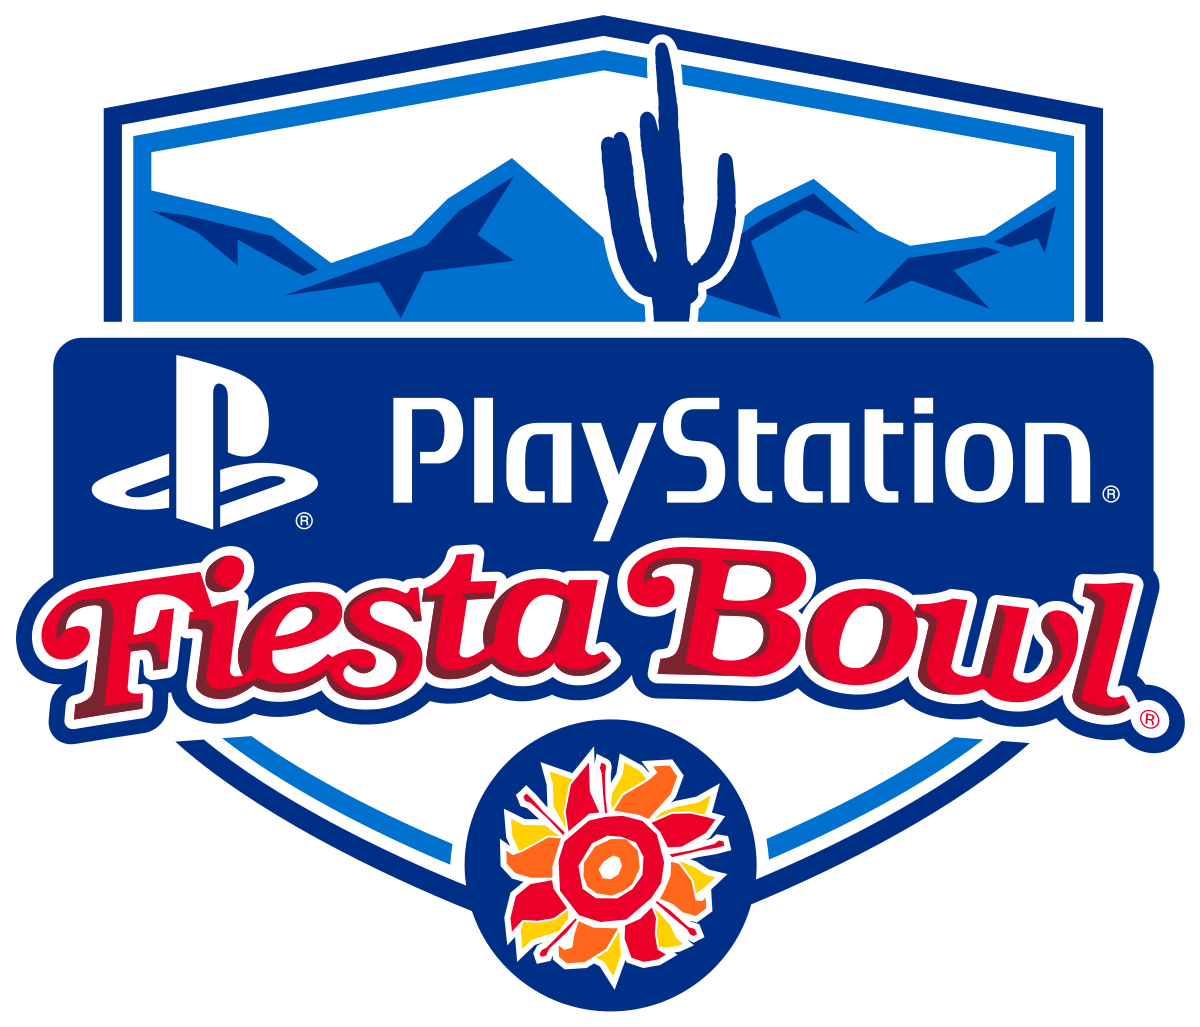 Daddy's Hangout 2019 Fiesta Bowl Predictions